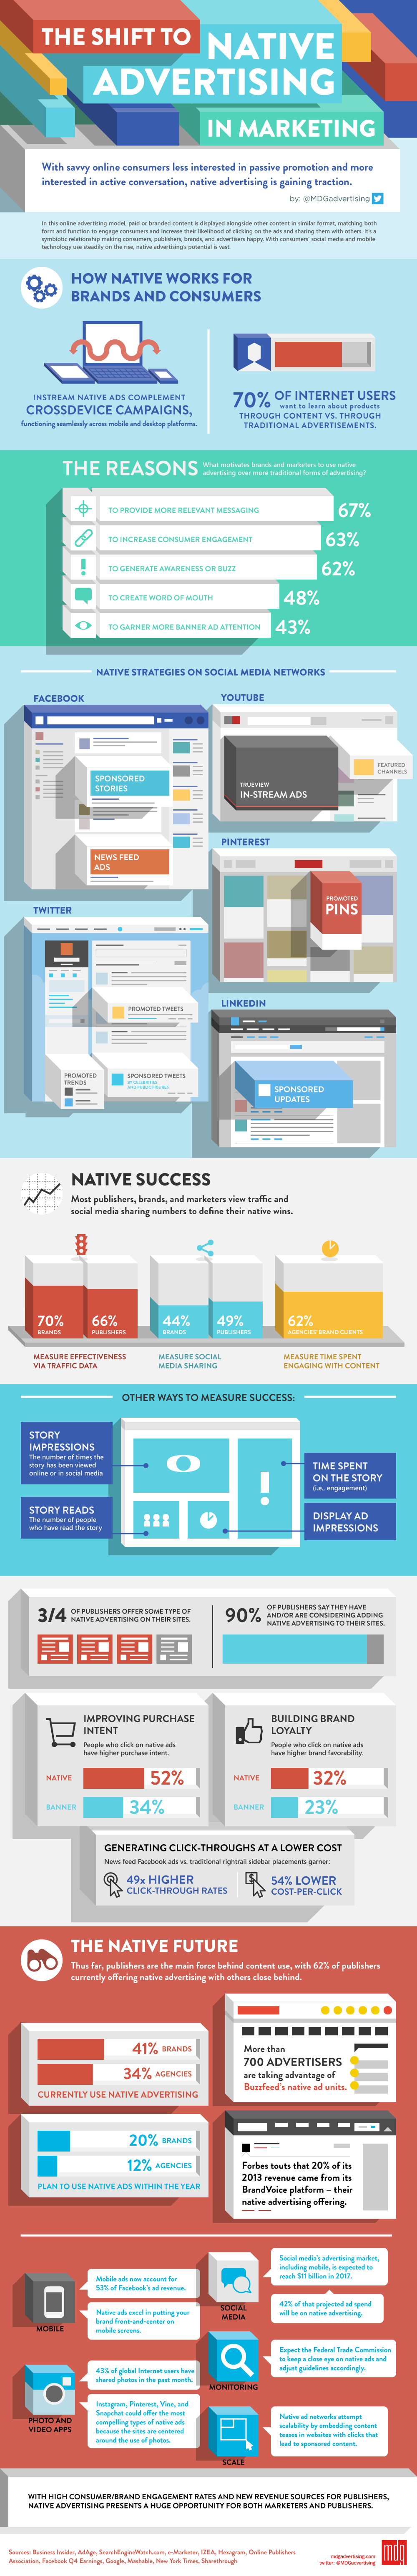 The Shift to Native Advertising in Marketing [Infographic]